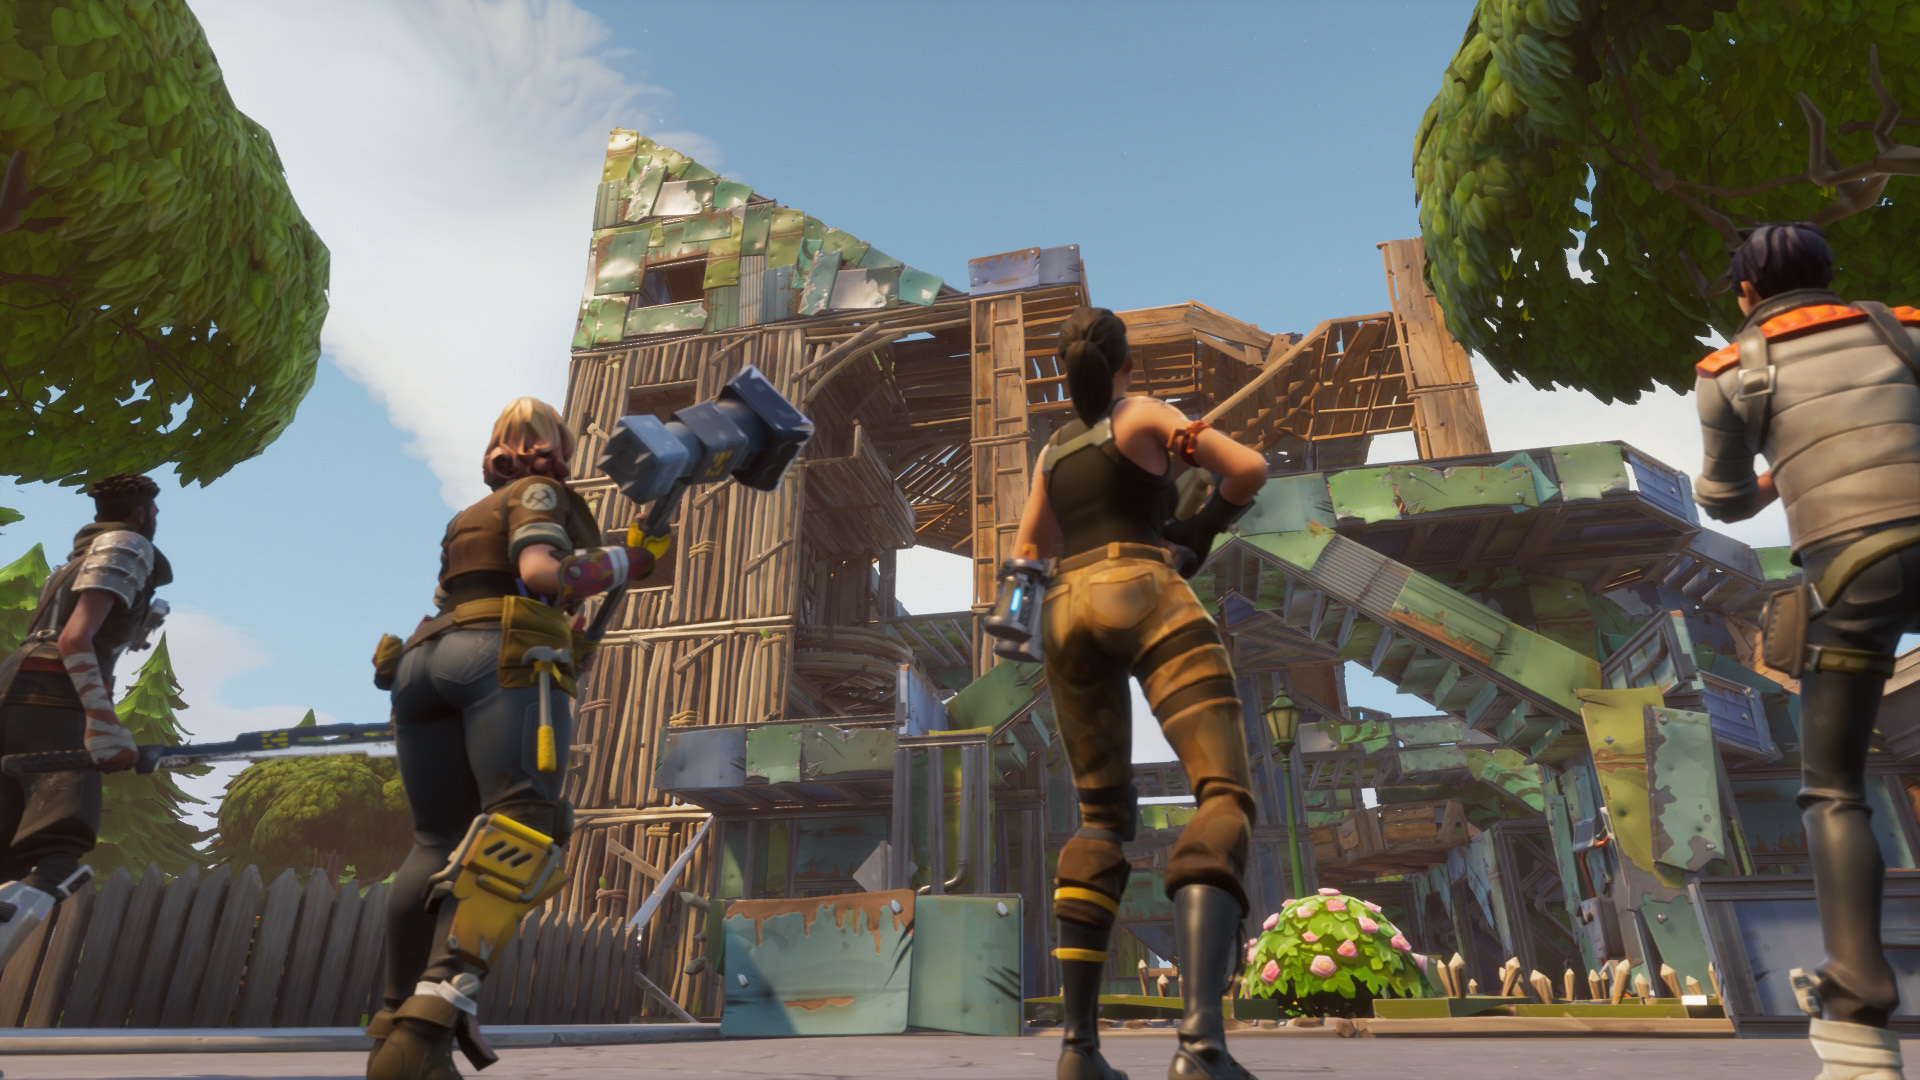 Fortnite Founder's Packs Now Available: Gain Early Access To Epic's